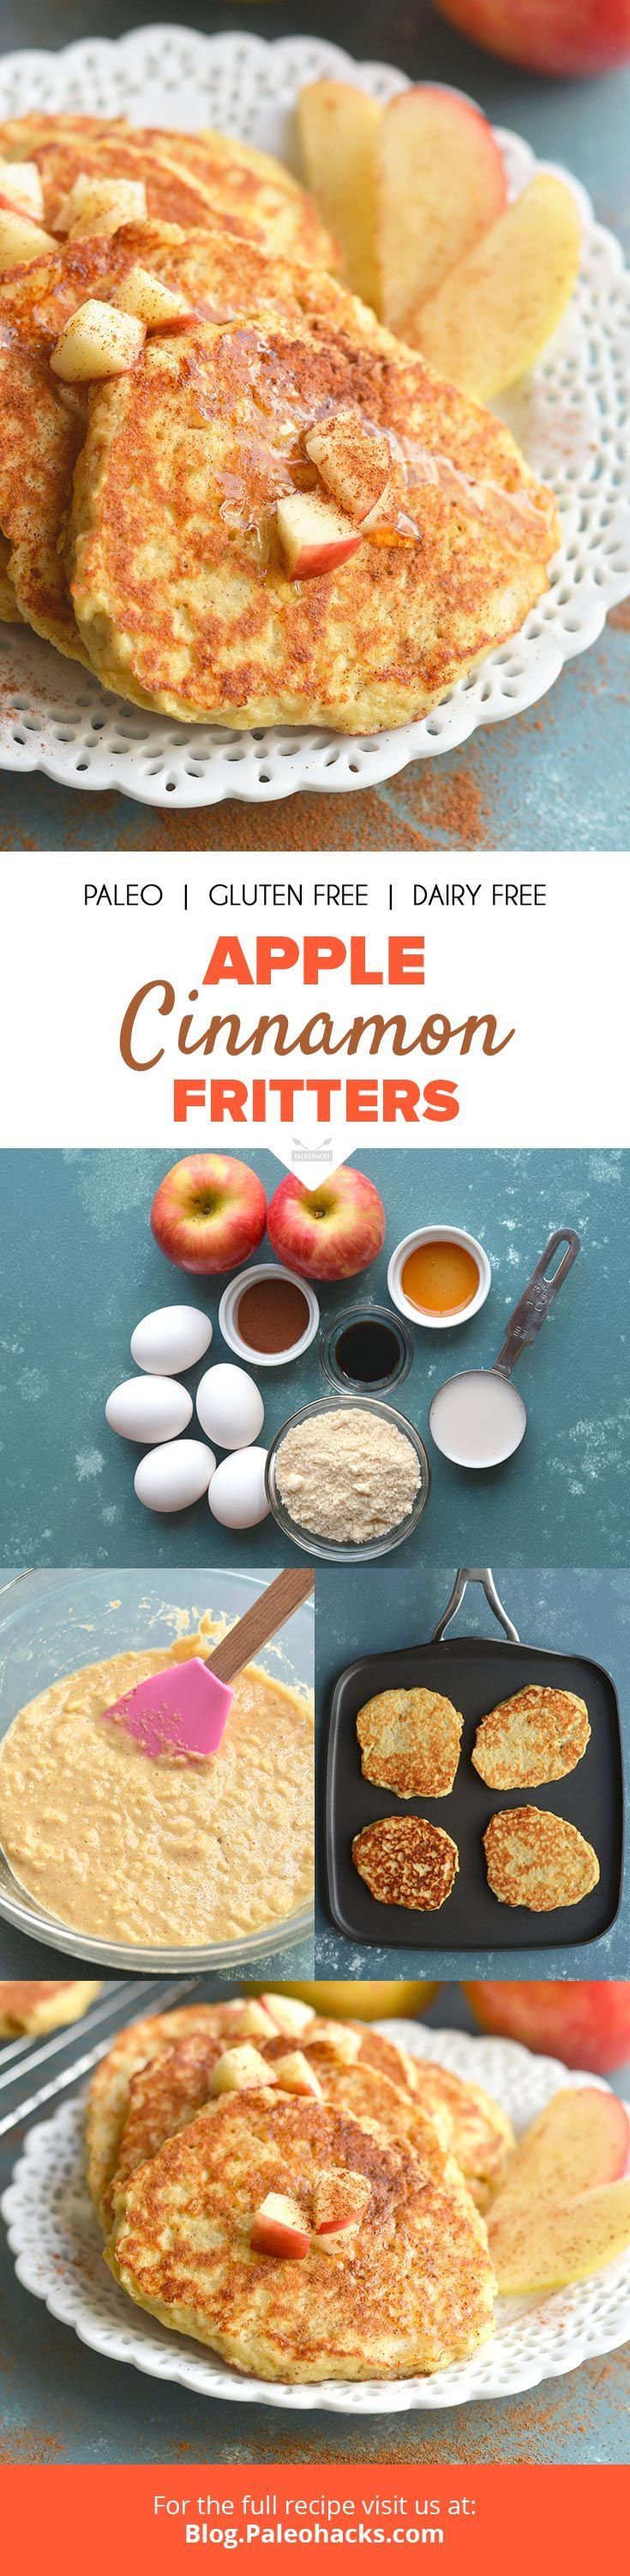 Cook These Apple Cinnamon Fritters in Coconut Oil for a Gluten-Free Breakfast! Get the full recipe here: http://paleo.co/applecinnafritters